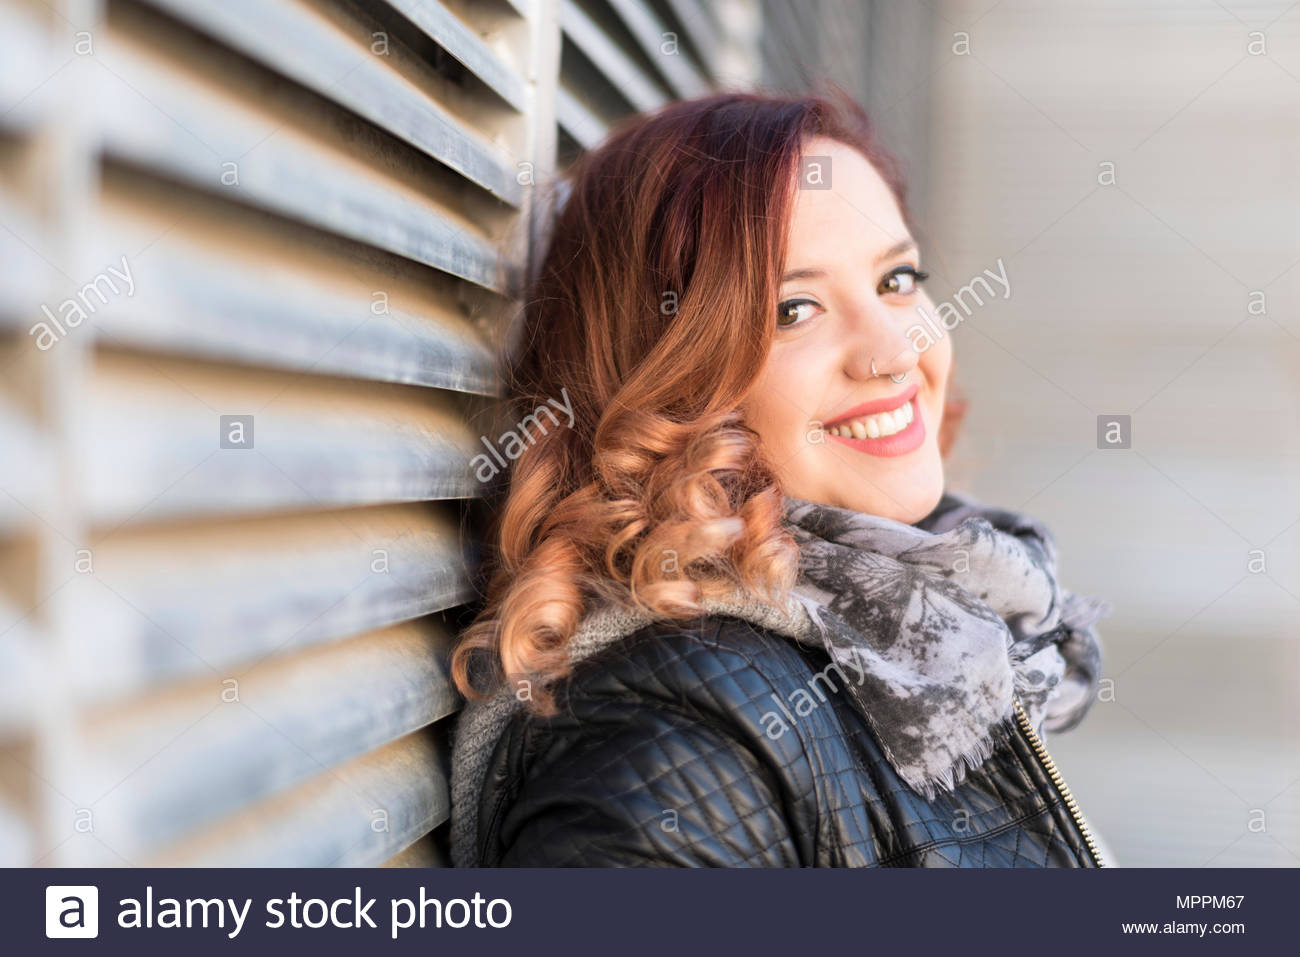 Portrait of happy young woman with curly hair and nose piercing - Stock Image